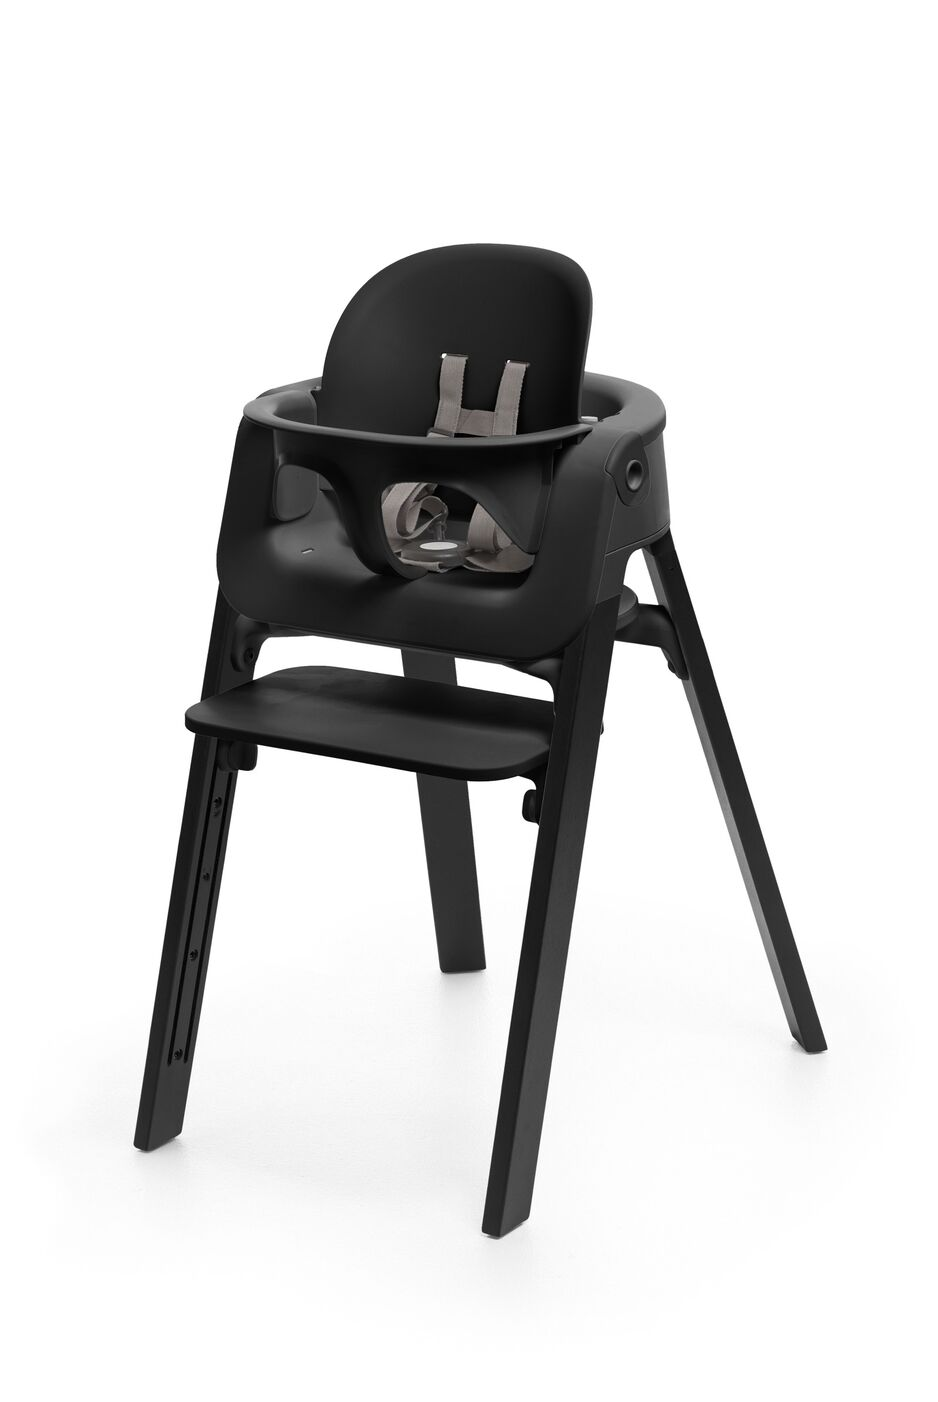 Stokke Steps High Chair In 2020 Stokke Steps Big Kids Room Stokke